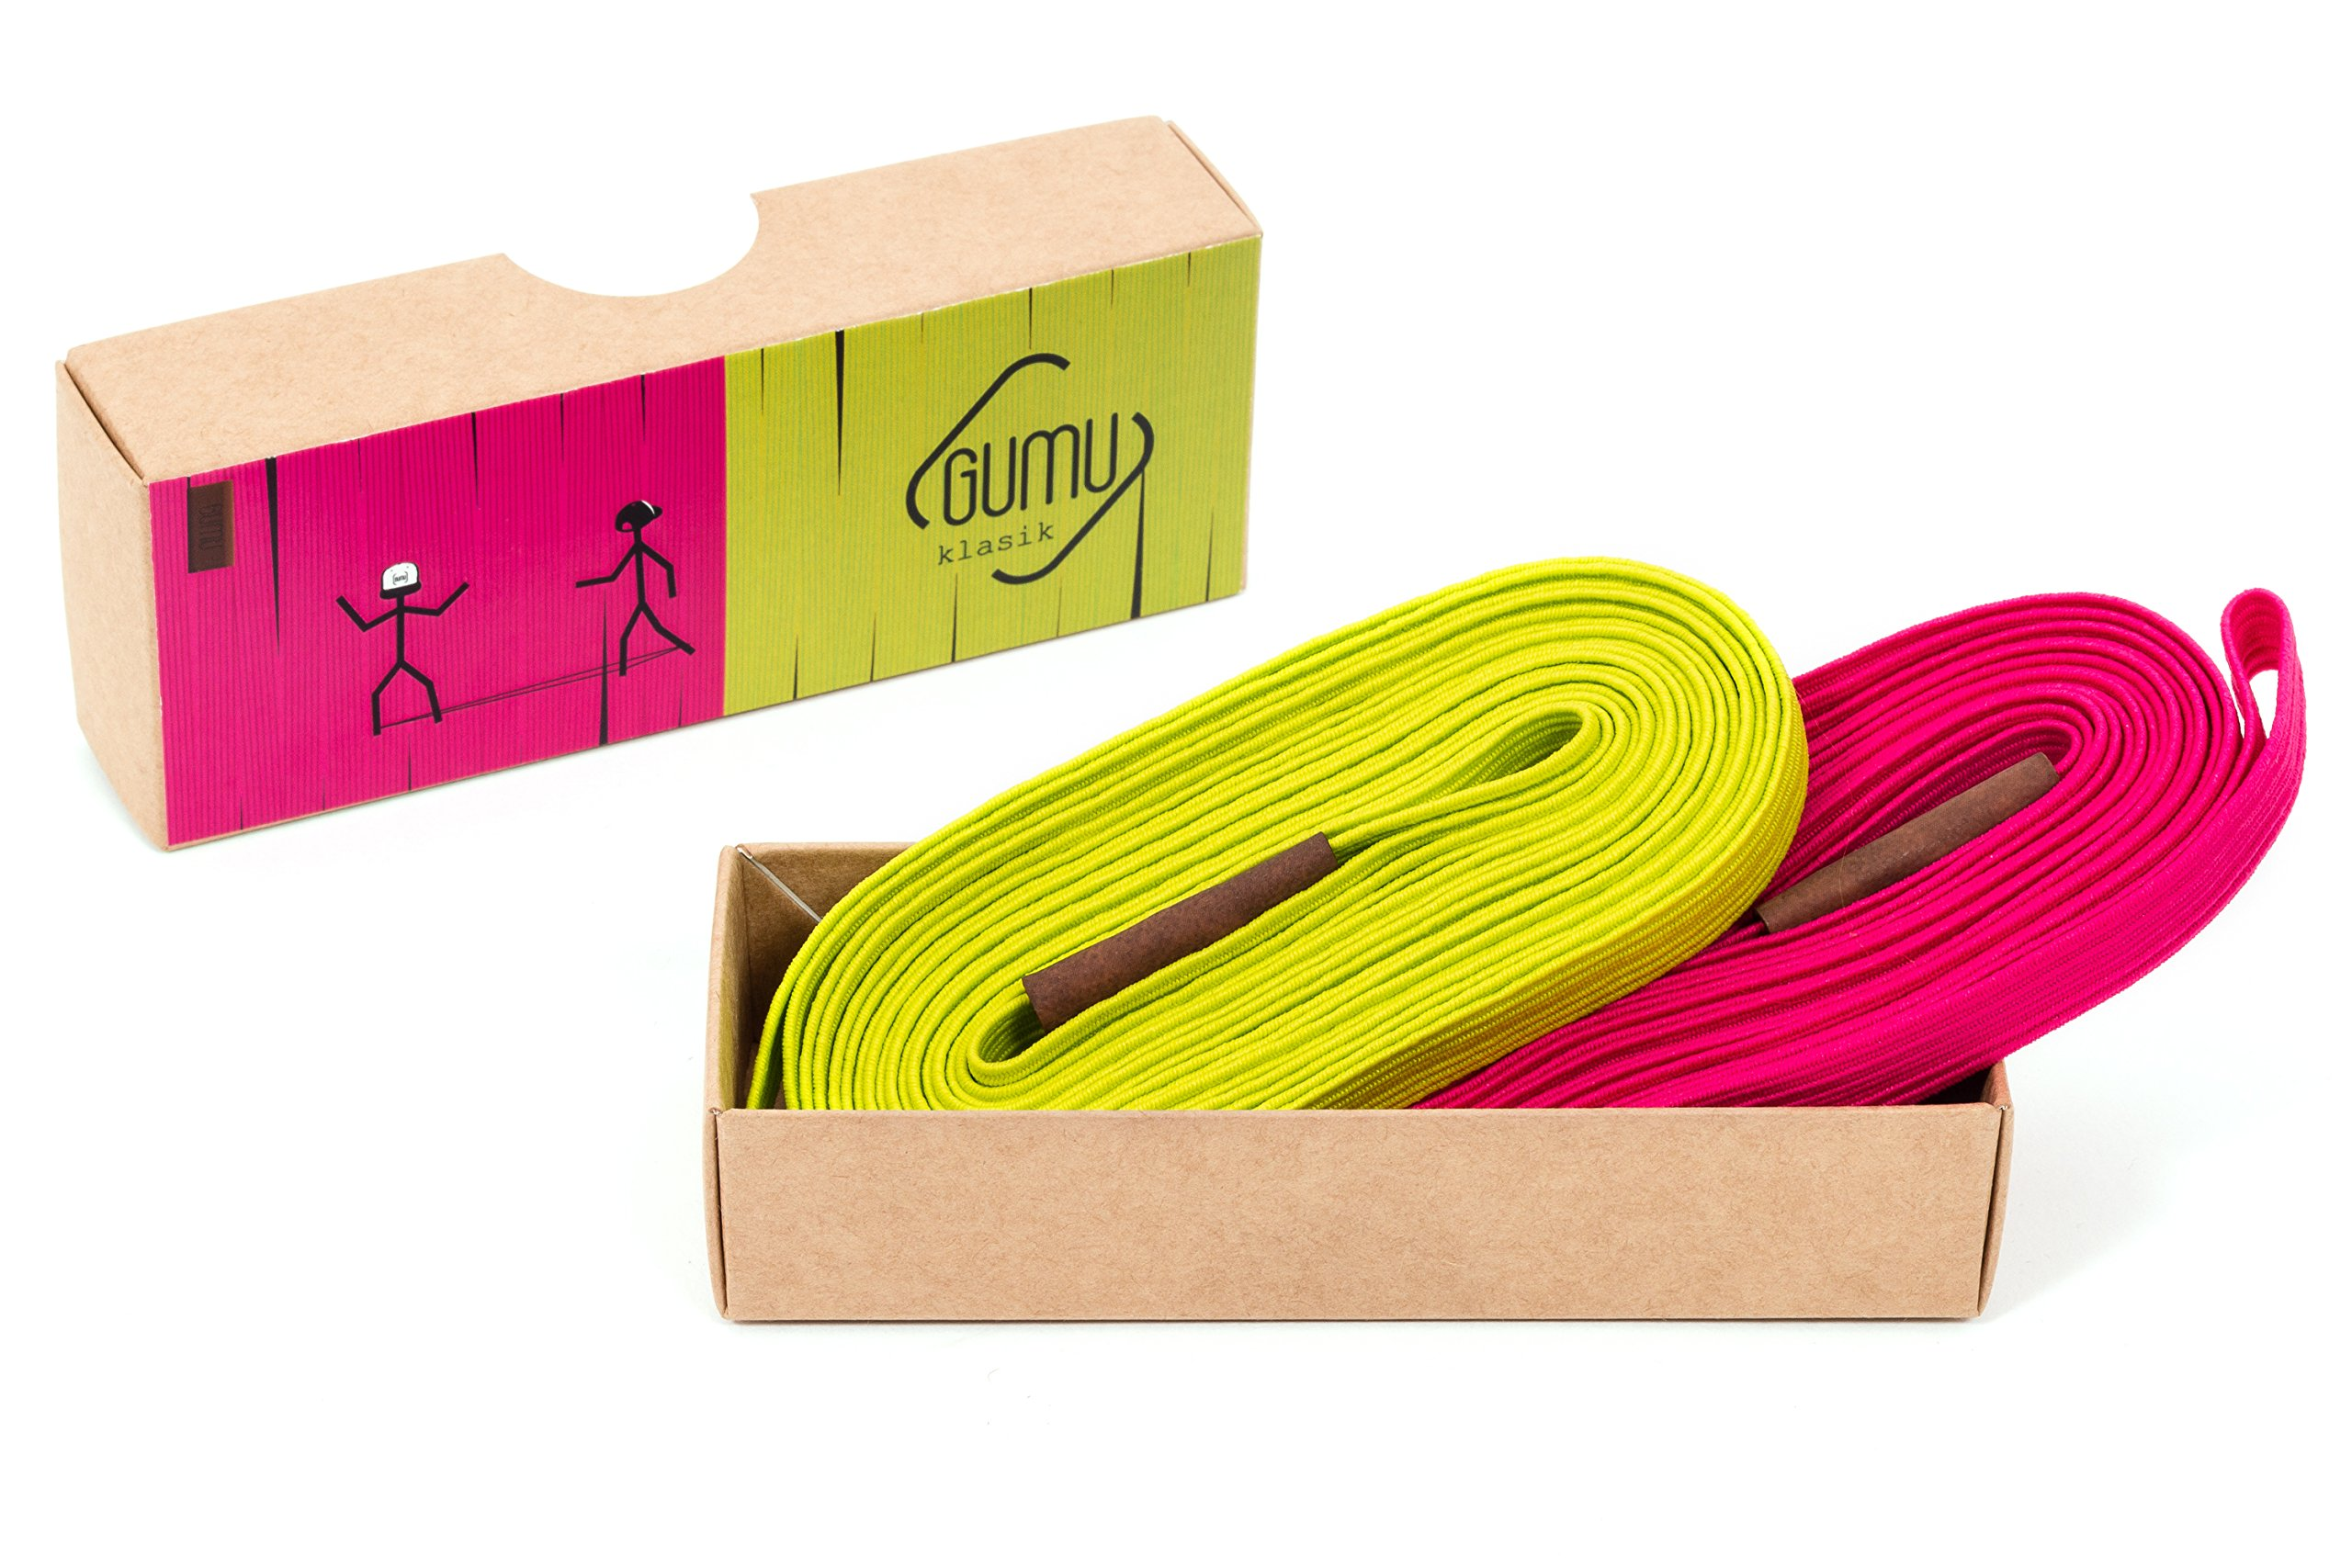 GUMU Chinese Jump Rope Klasik – 11 Feet – Pack of 2 Colored Chinese Jump Ropes for Kids and Adults – Durable, Highly Elastic and Non-Slip (gerber + lime)